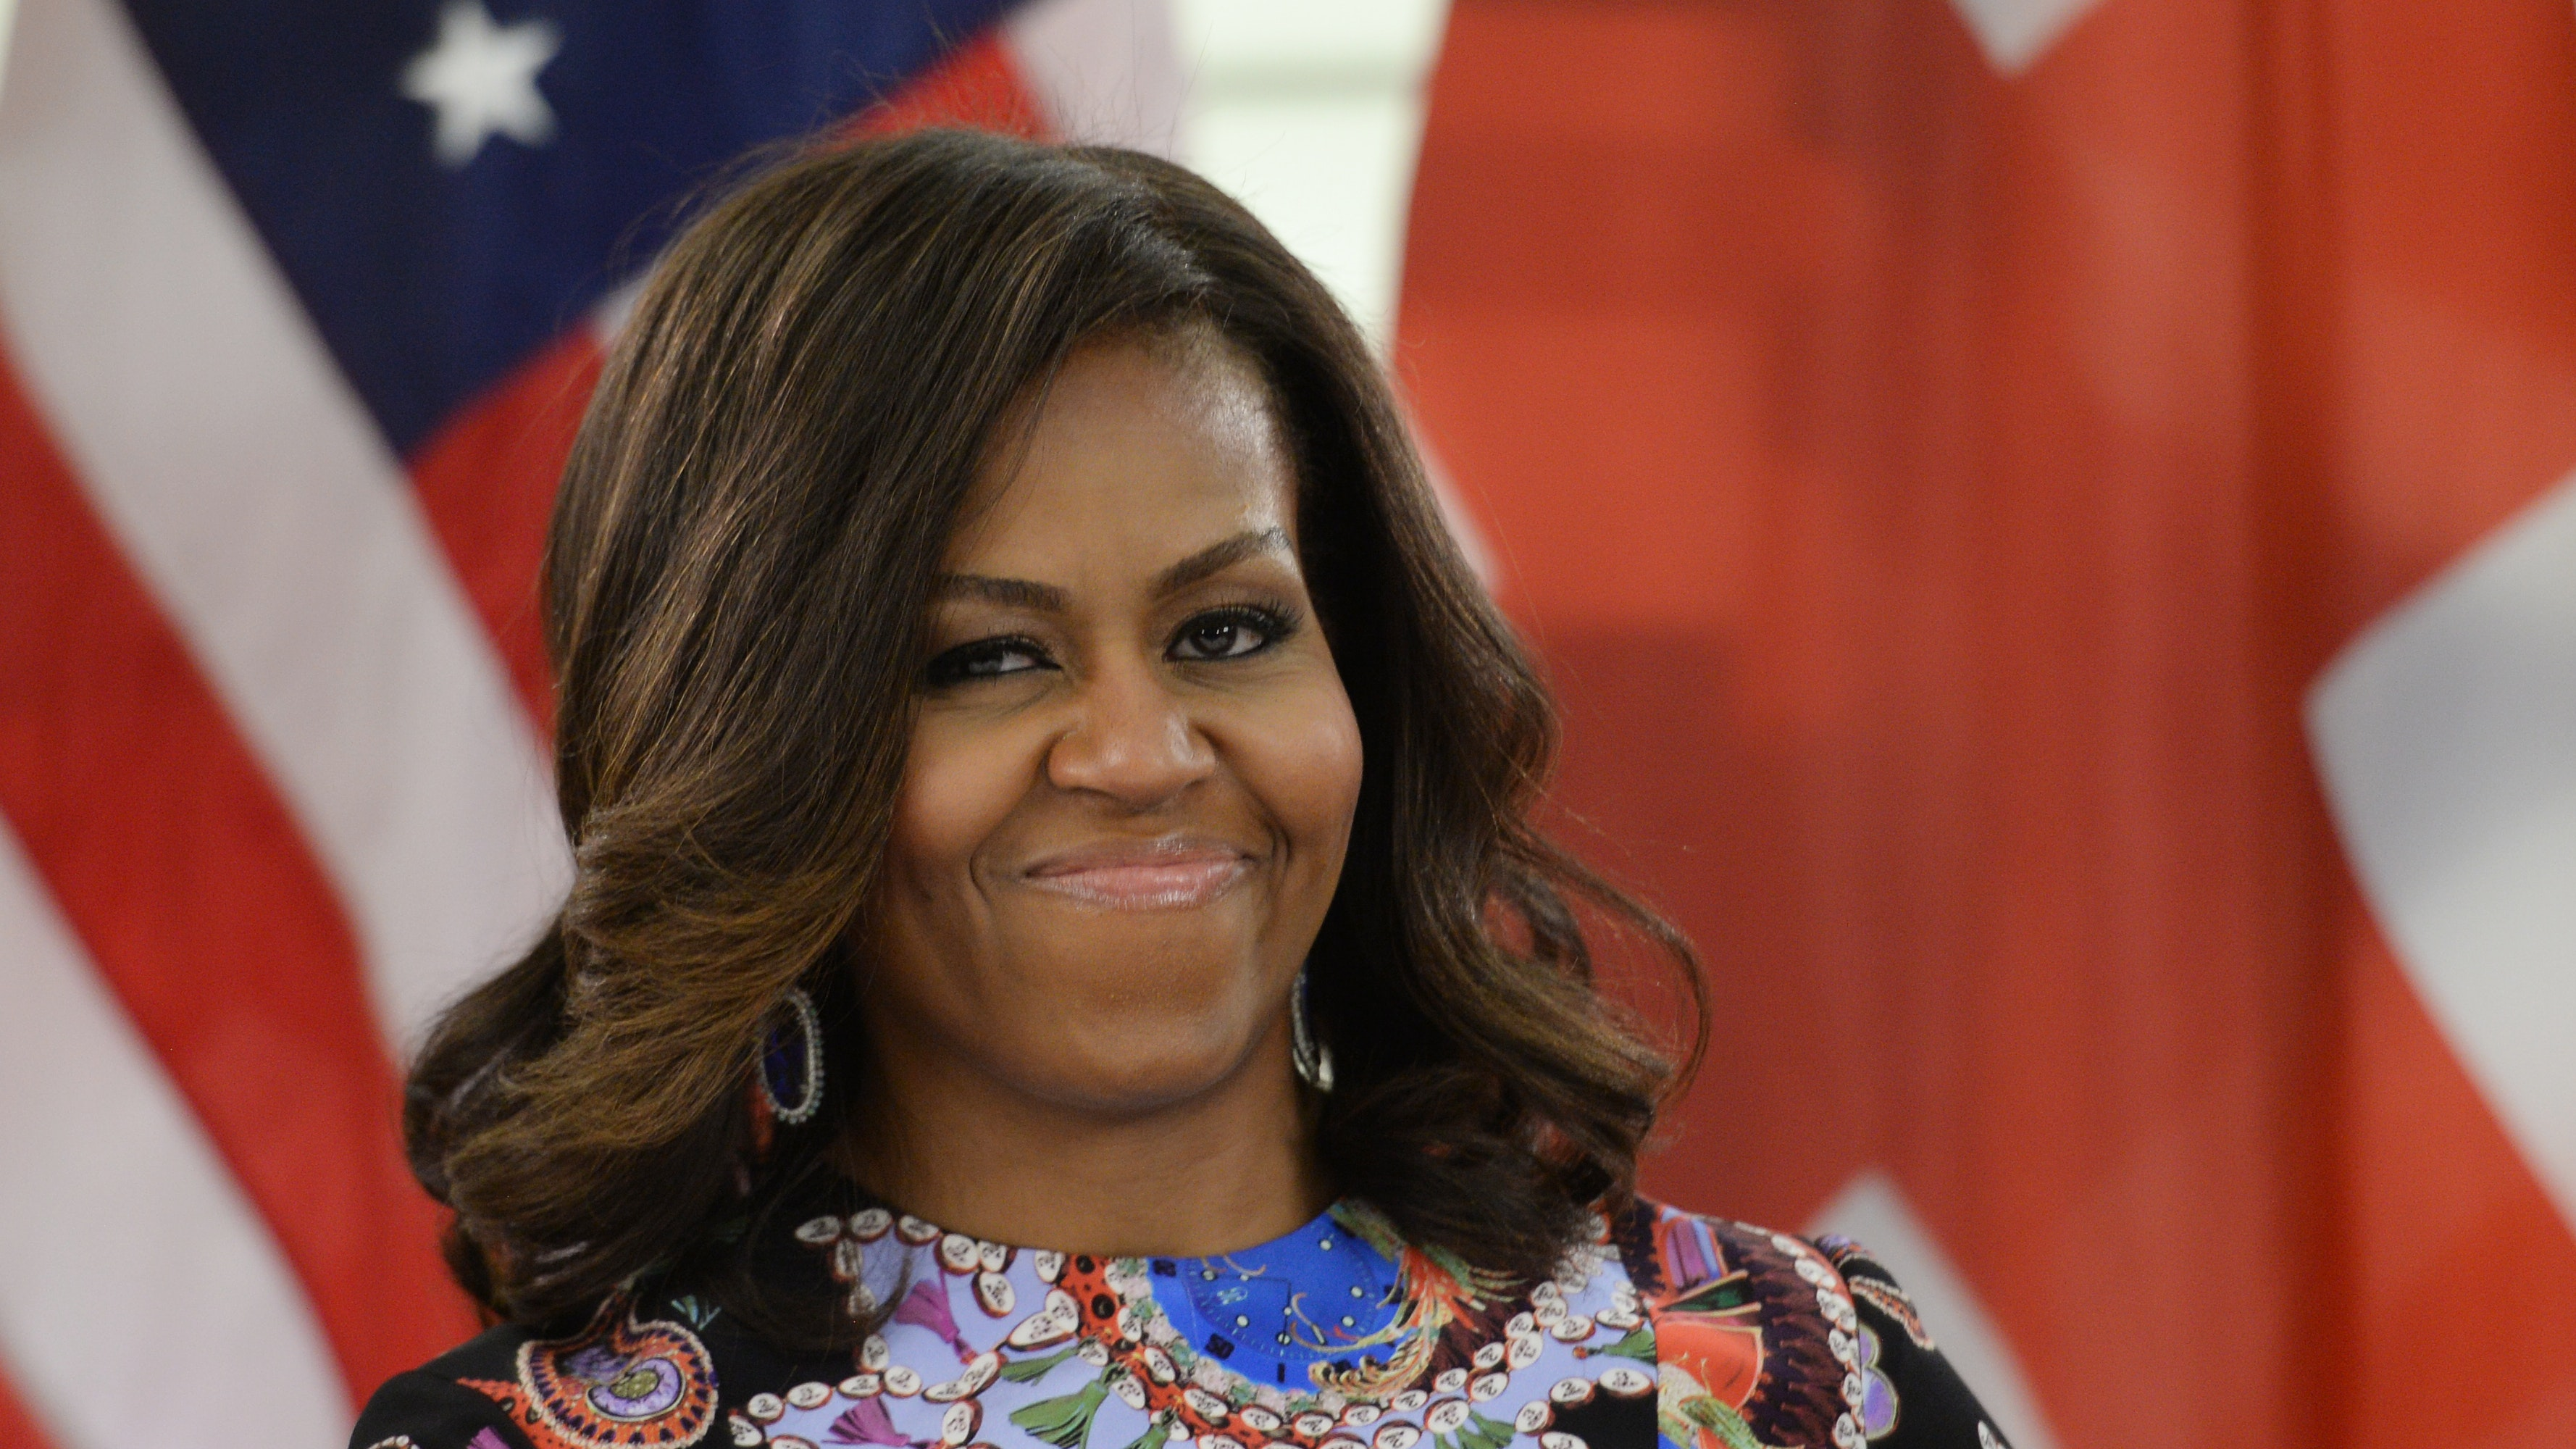 Michelle Obama to release memoir 'Becoming'